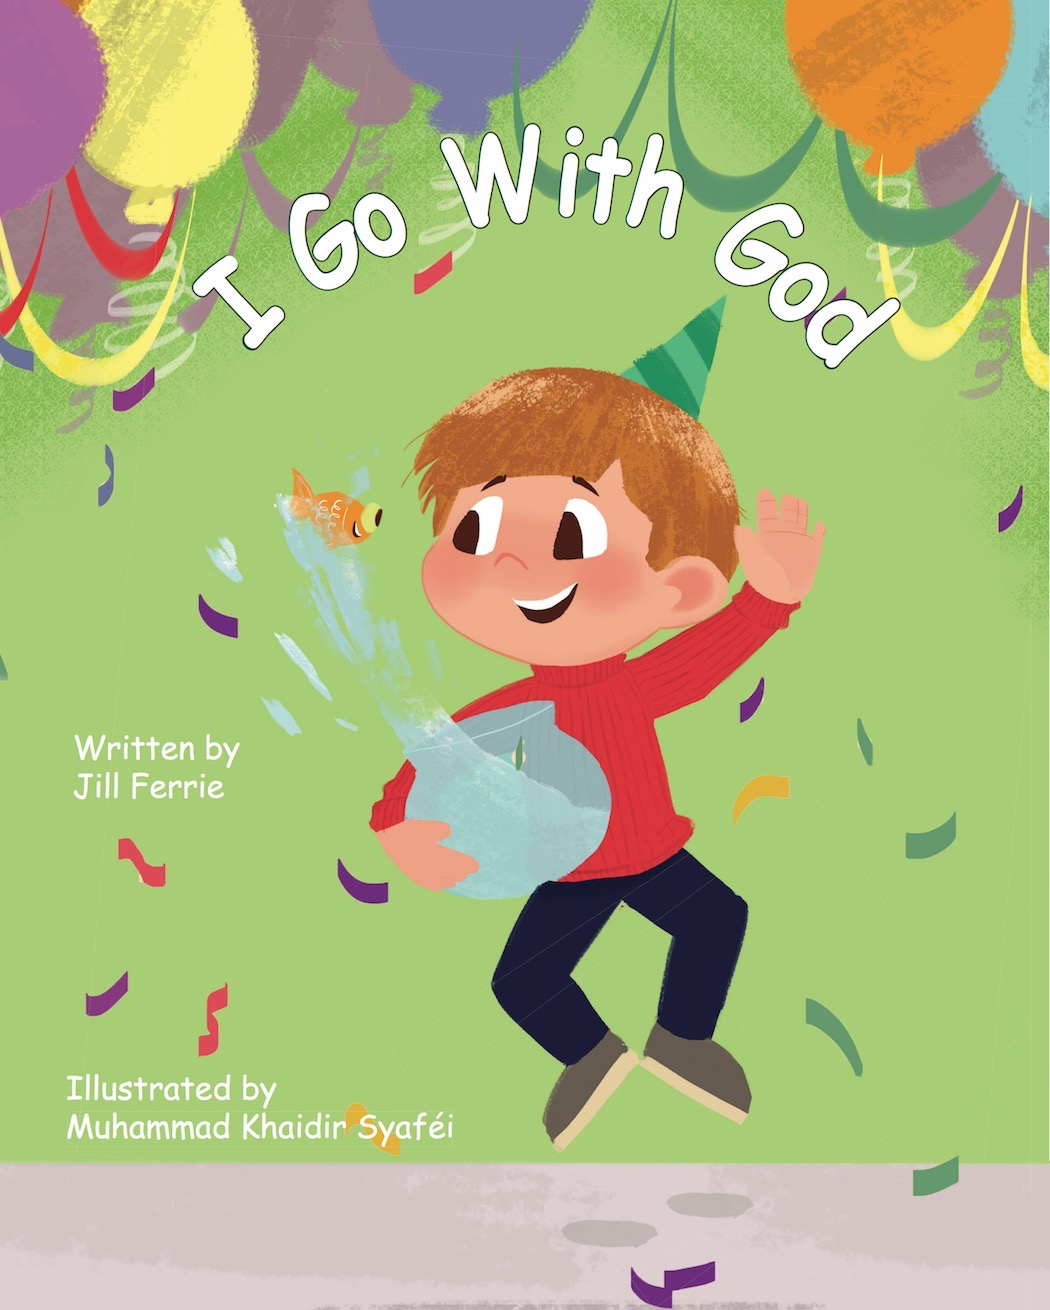 I Go With God - Prayer is the superpower! A young boy discovers that God's angel messages come to help him through prayer-when he wakes up feeling sick the day of his friend's big party. God's angels also give him the right thoughts he needs to help his pet fish. The boy quickly learns he can pray to God anytime, anywhere because God is Spirit and is always with him. So help is always at hand.Hard Cover: 978-0-9976560-0-8Soft Cover: 978-0-9976560-2-2